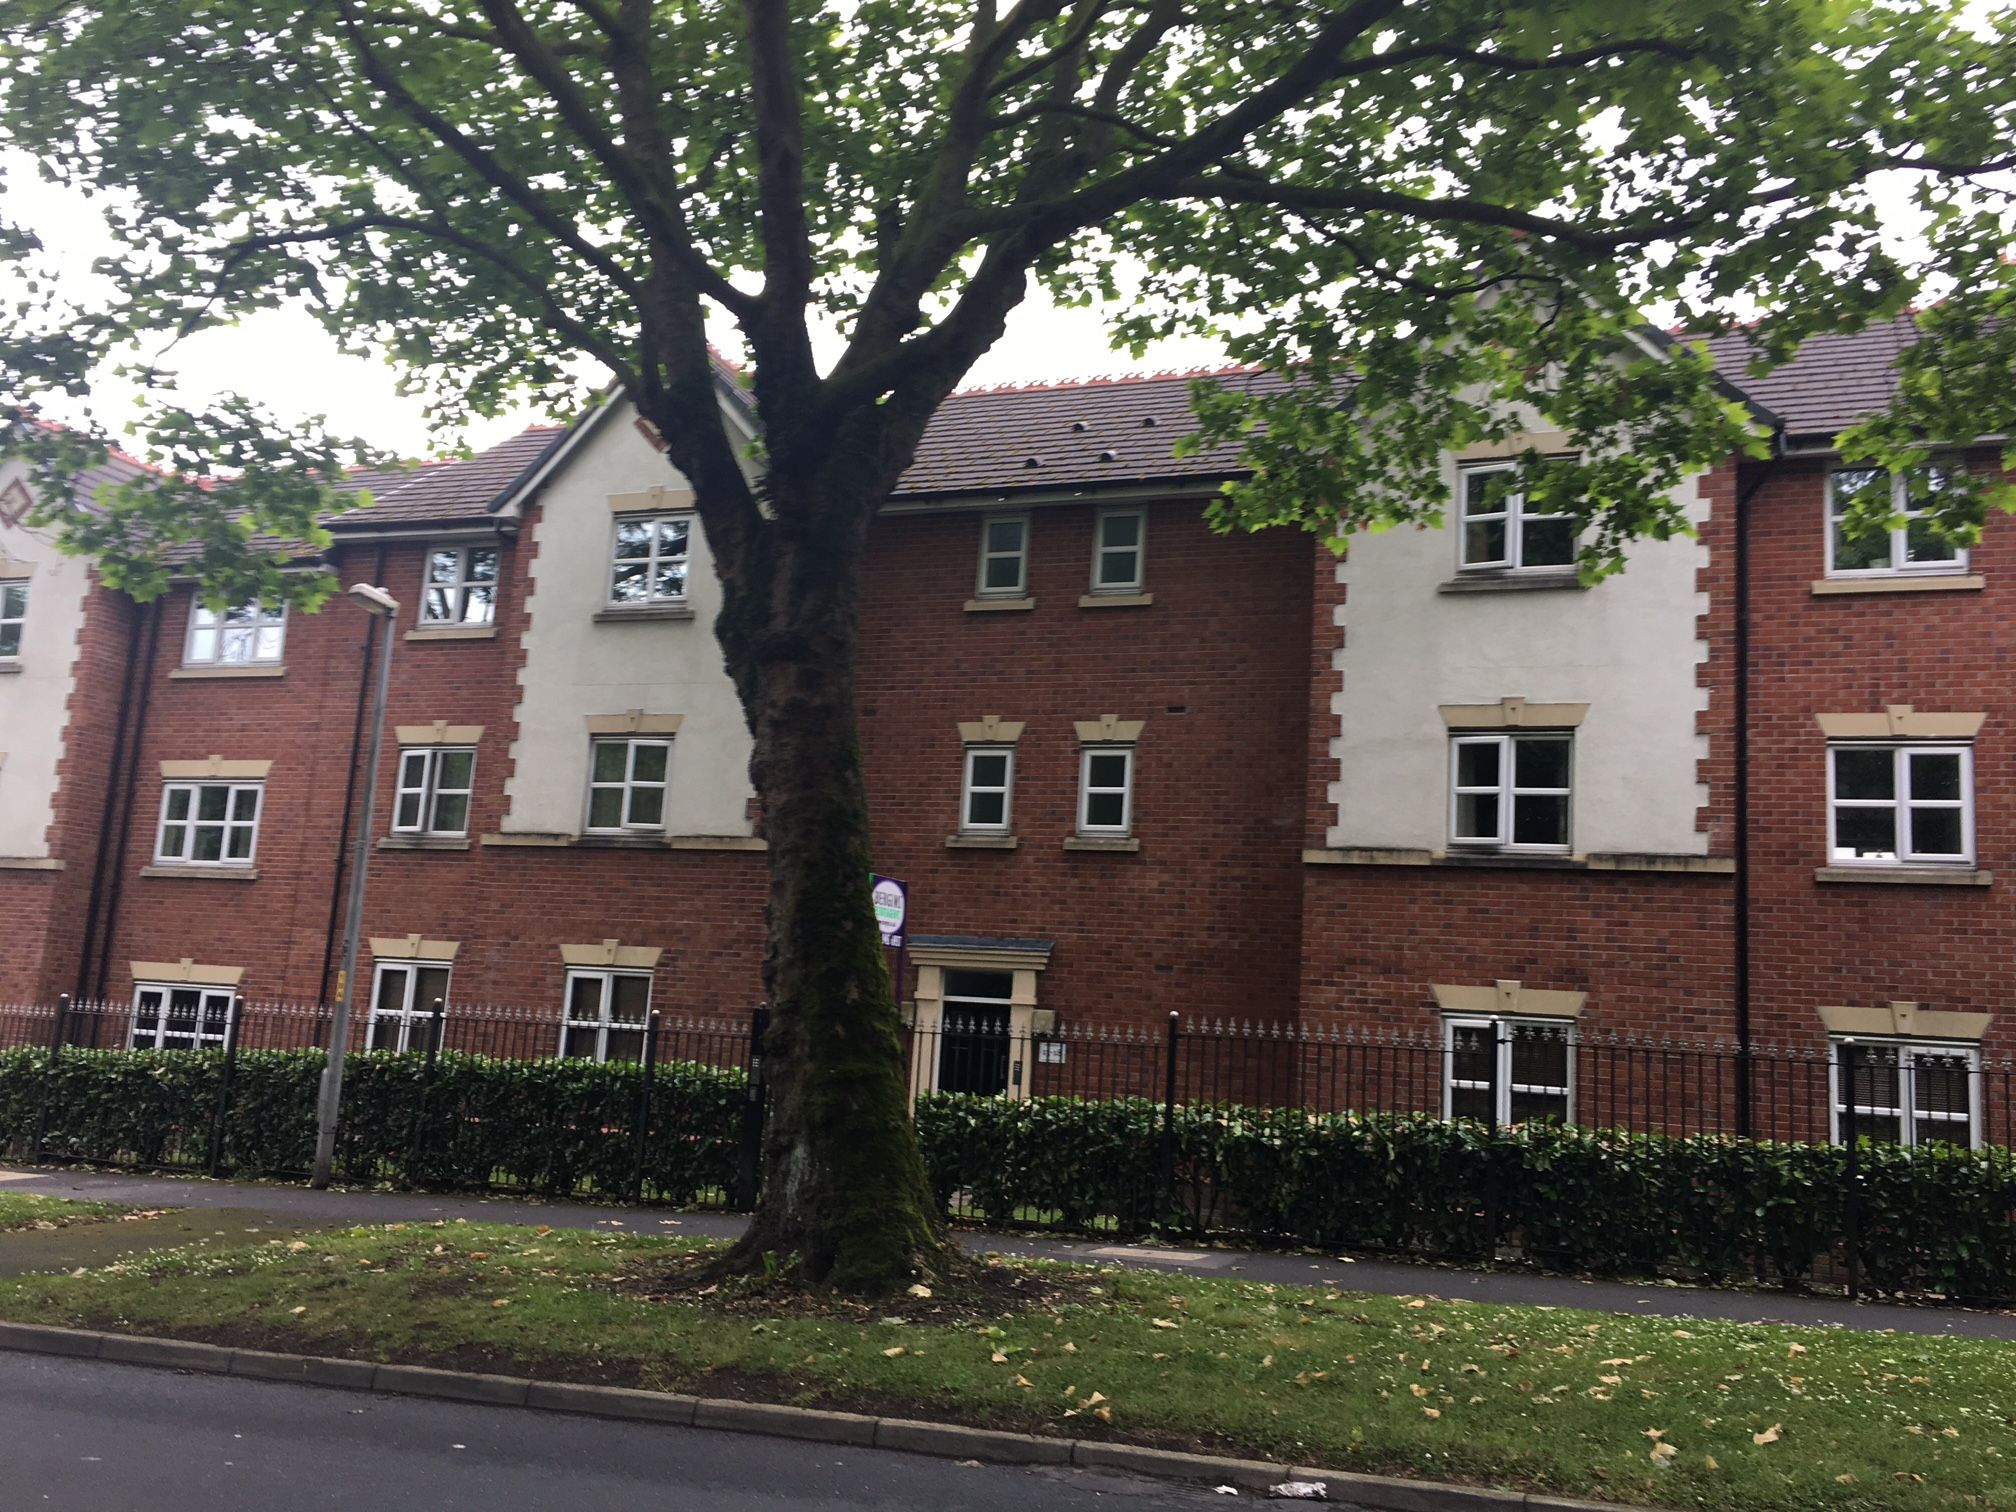 2 bedroom flat flat/apartment To Let in Manchester - Photograph 1.